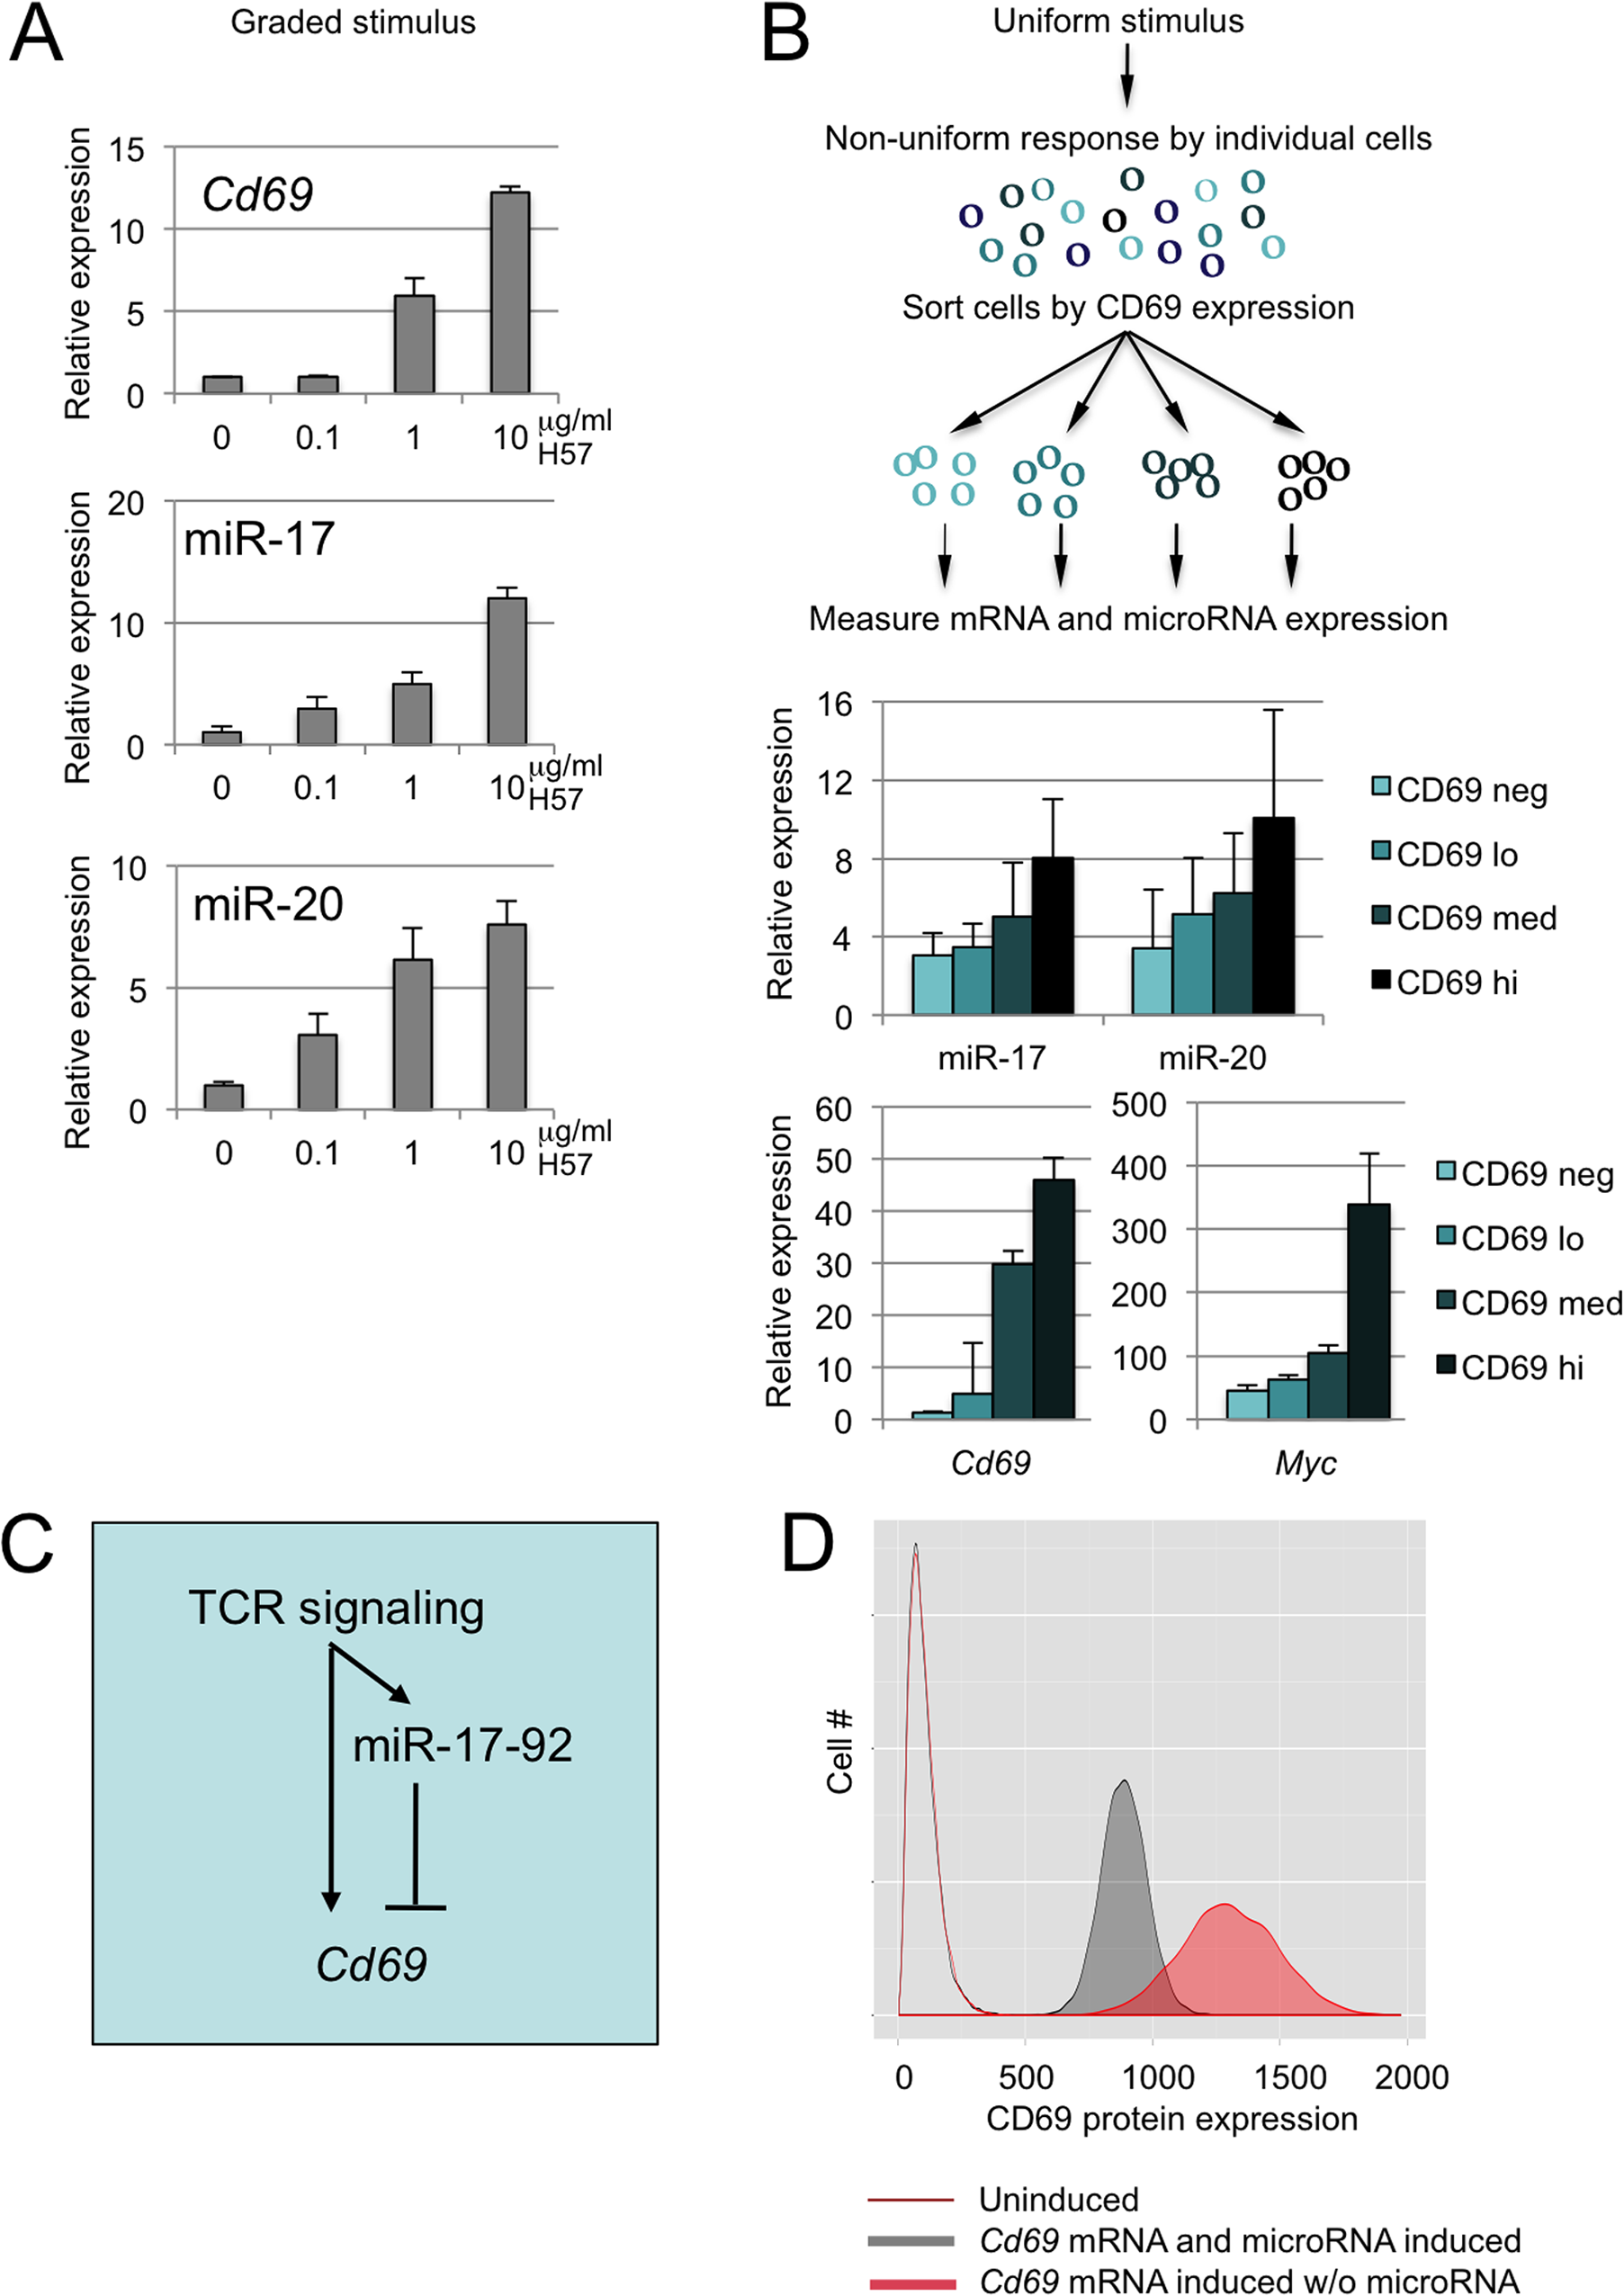 miR-17 and miR-20 form an incoherent positive feedback loop with the target mRNA <i>Cd69</i>.